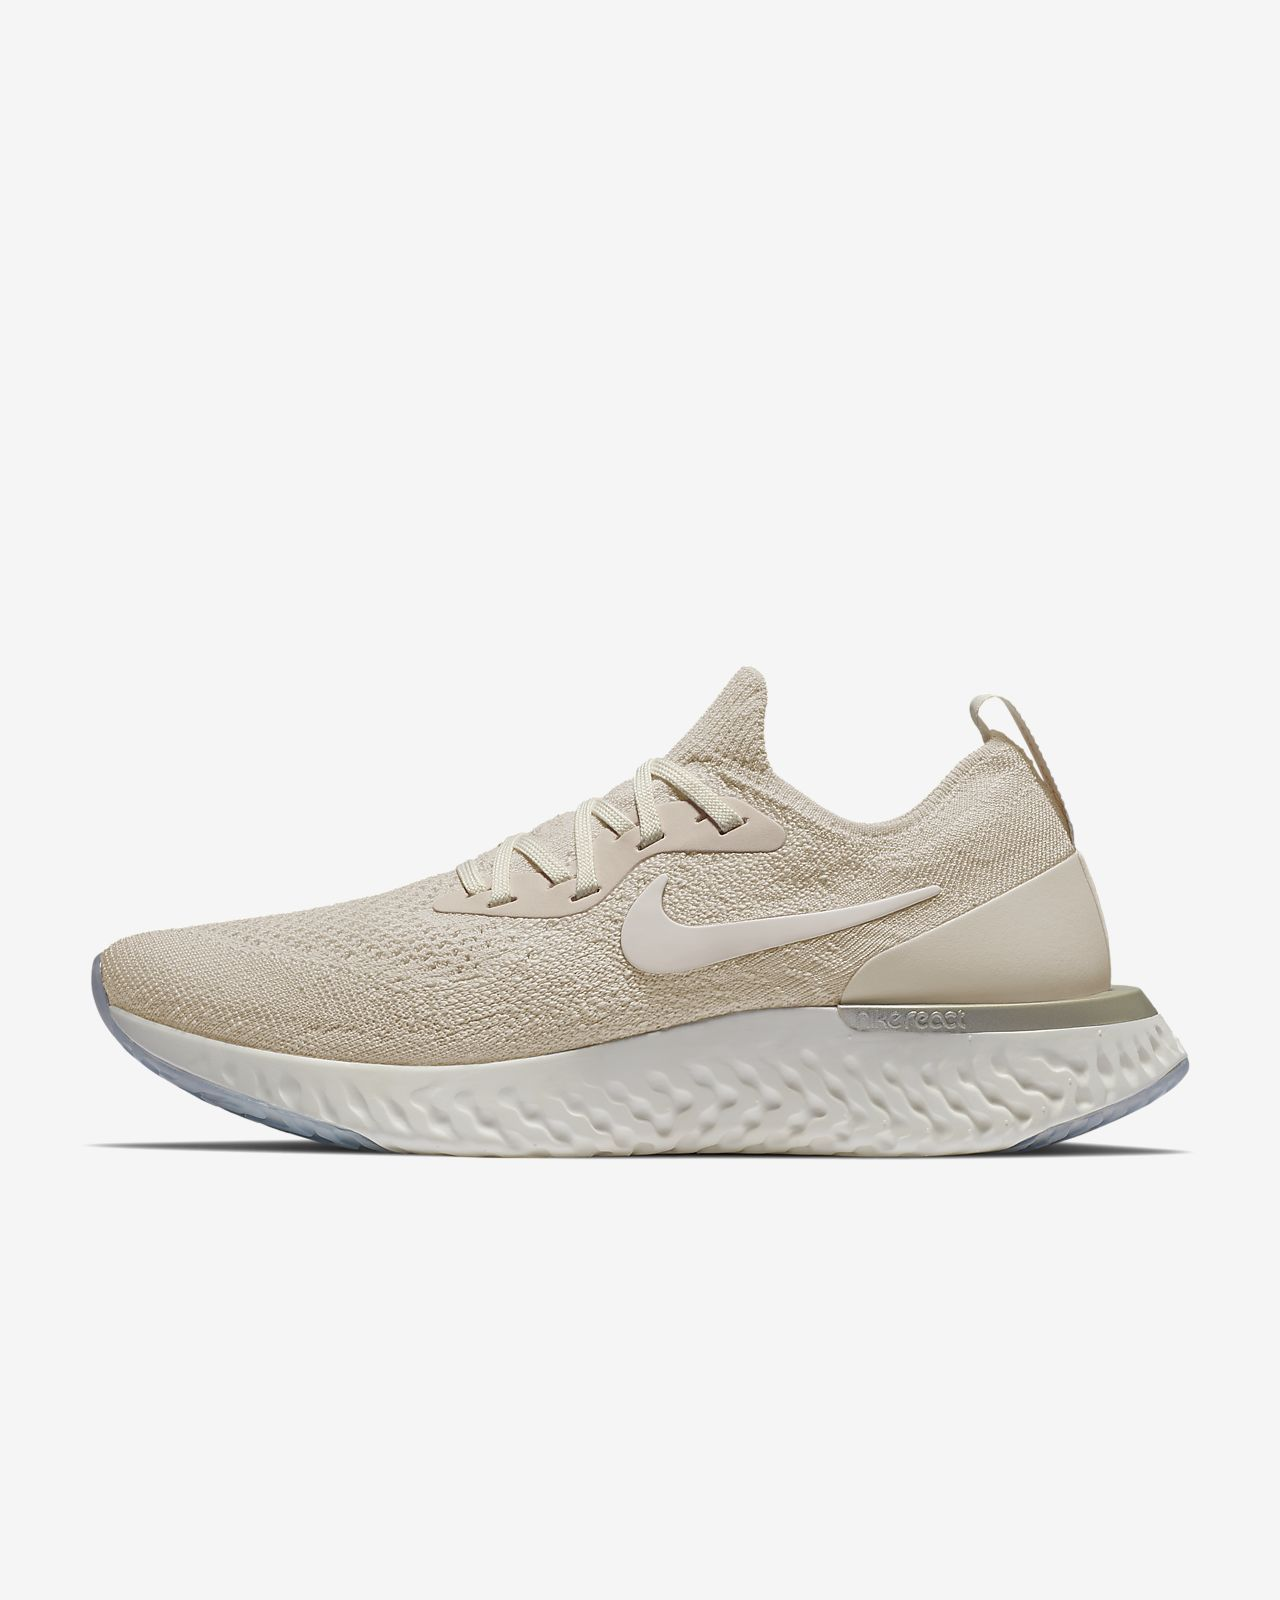 0cb8cd80a7e Nike Epic React Flyknit Women s Running Shoe